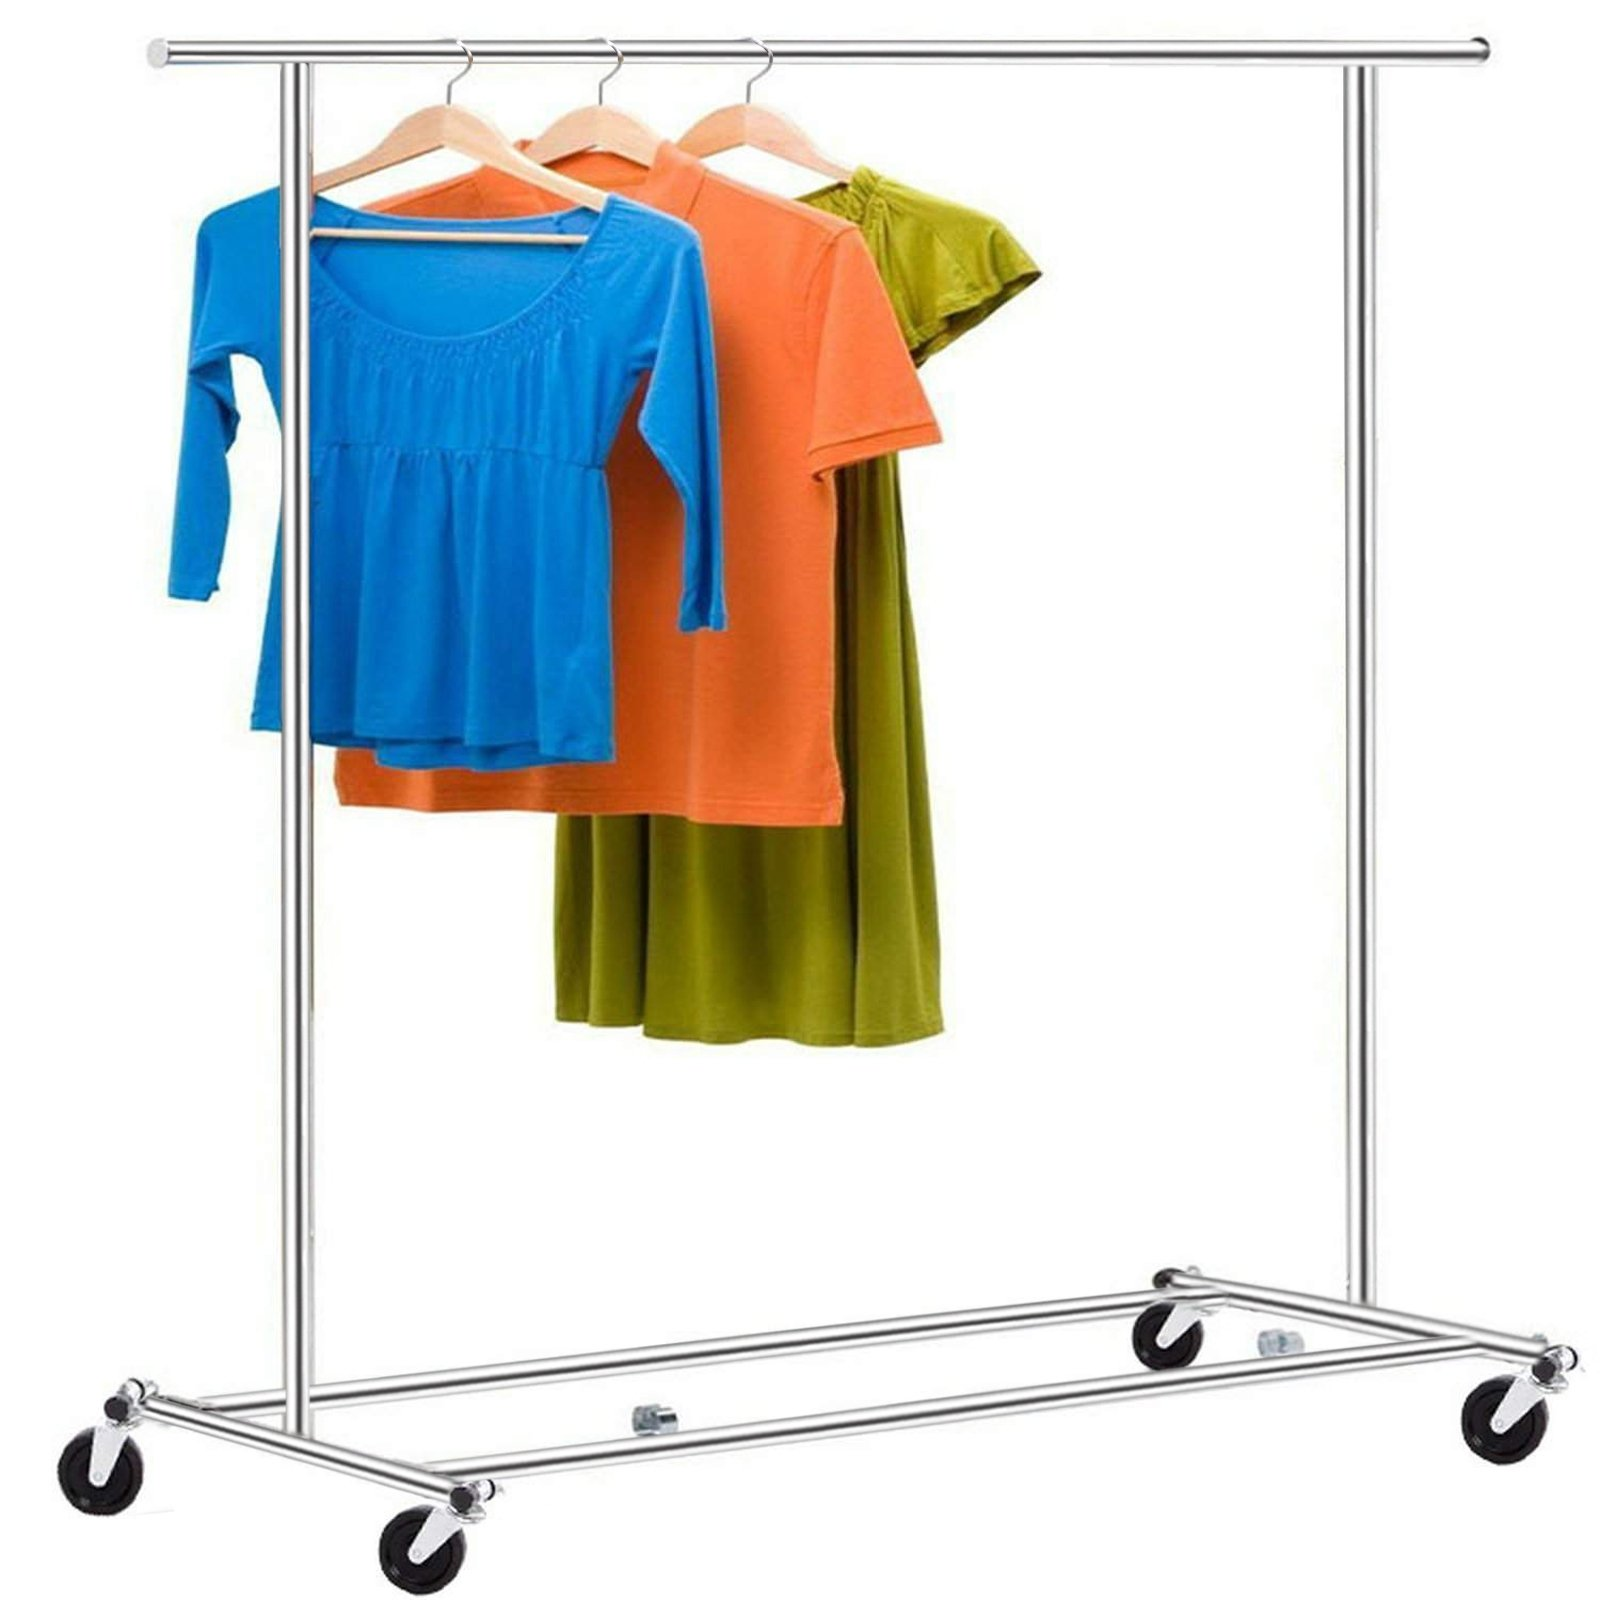 Cosway Adjustable Clothes Hangers Chrome Finish Garment Drying Display Hanging Racks With Rolling Wheels, US Stock